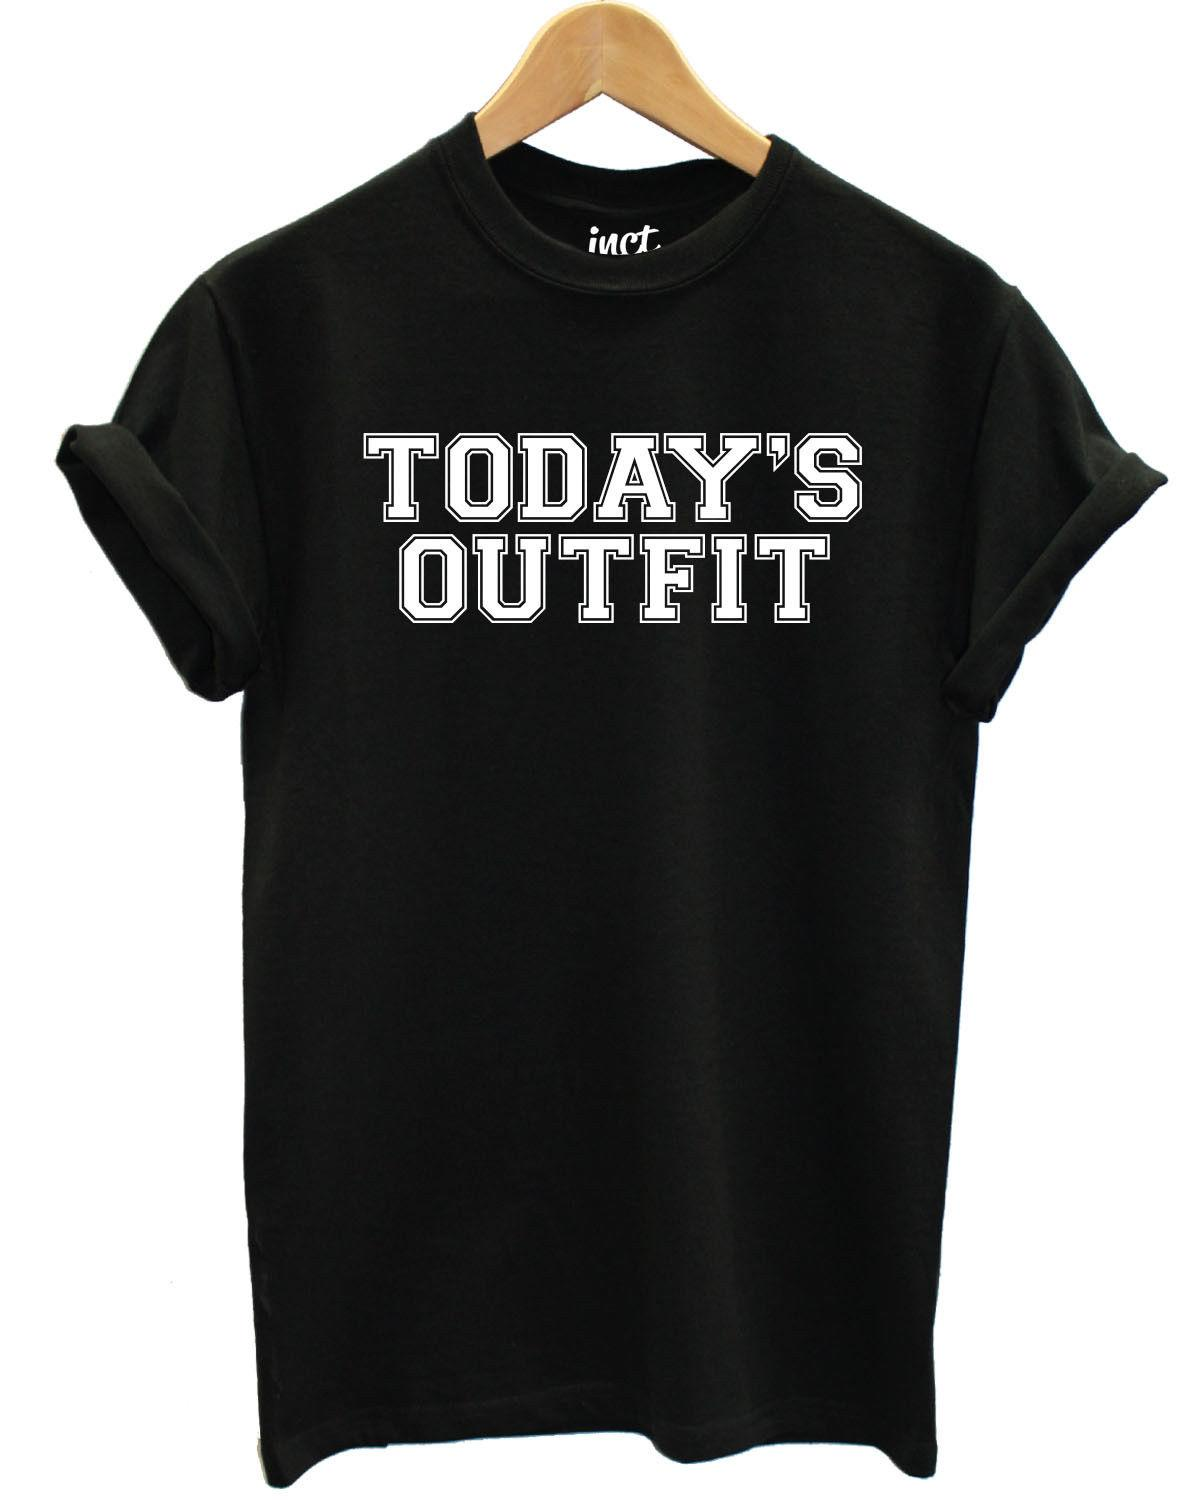 86d0c4061 Todays Outfit Slogan Black T Shirt Womens Small Fashion SALE CLEARANCE A5  Funny Unisex Tee T Shirt Making T Shirts For Sale From Stshirt, $12.96|  DHgate.Com